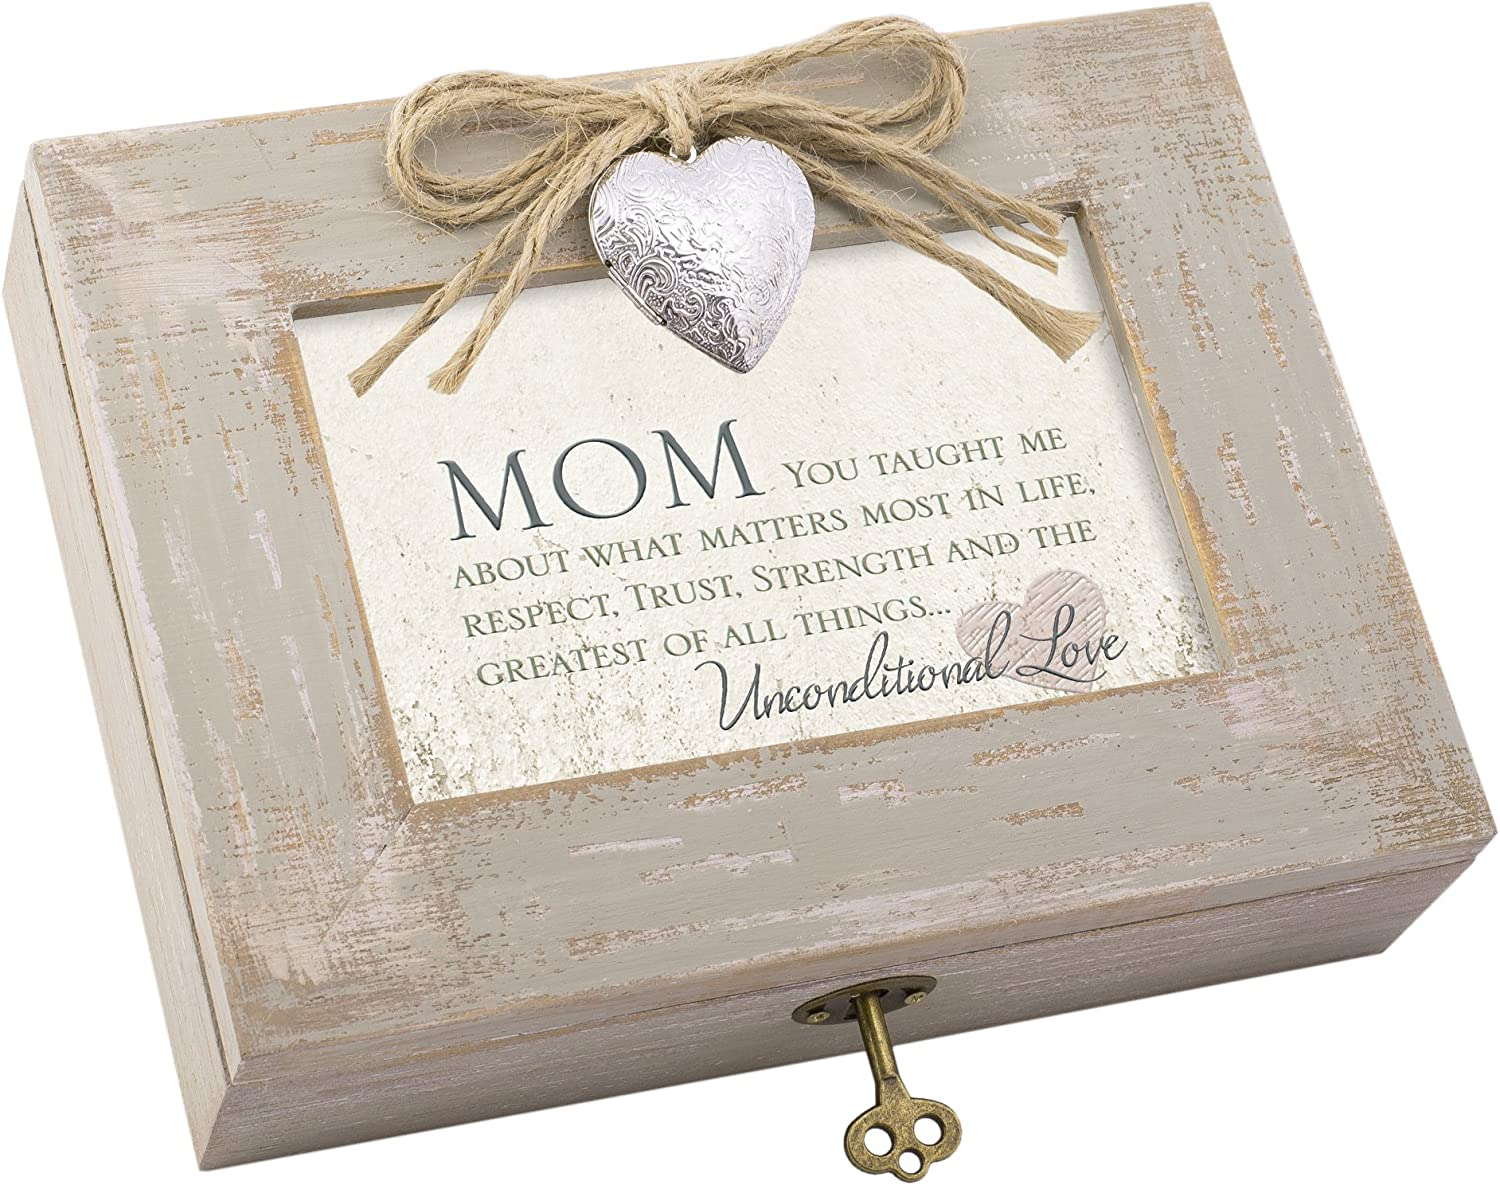 Cottage Garden Mom Taught What Matters Most Natural Taupe Jewelry Music Box Plays Wind Beneath My Wings